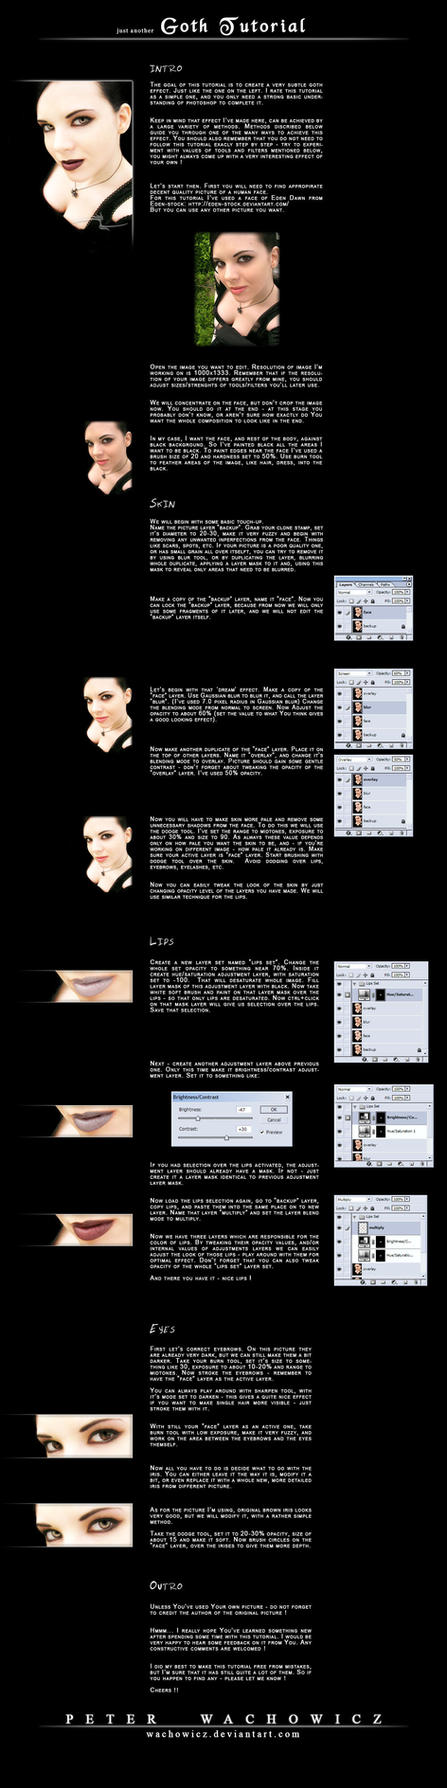 Goth Tutorial by wachowicz